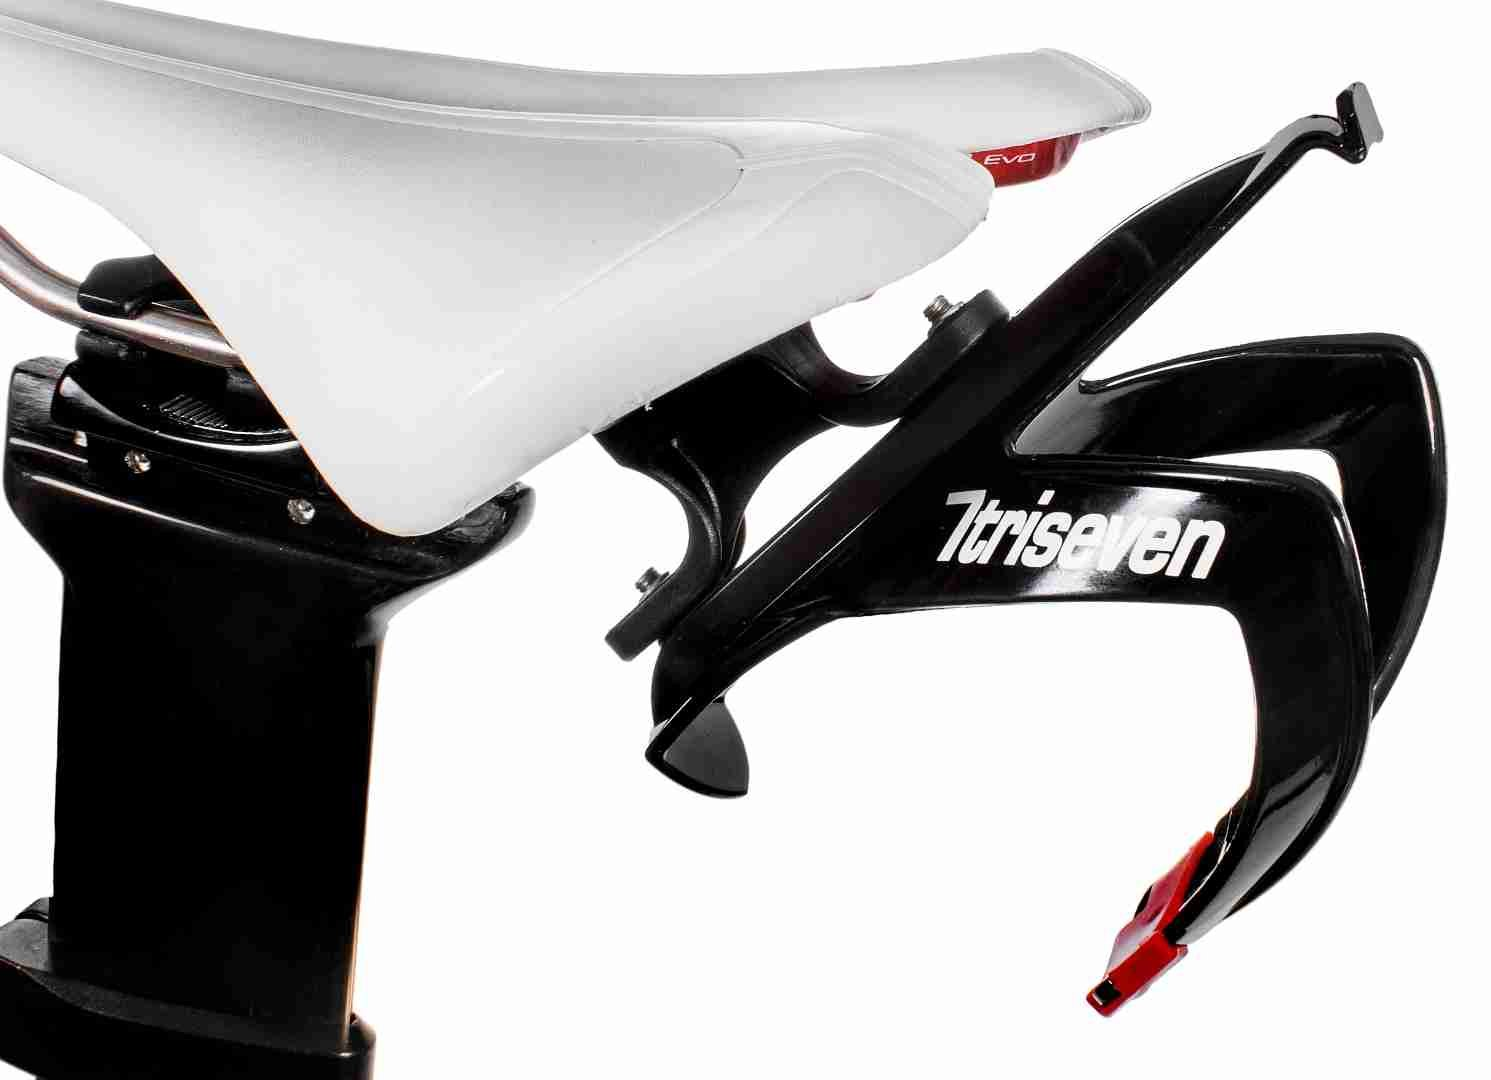 triseven Rear Carrier System - Lightweight Cycling, Triathlon MTB | Easy to Mount & Holds 1 Water Bottle Cage | Includes Complimentary Composite Water Cage!